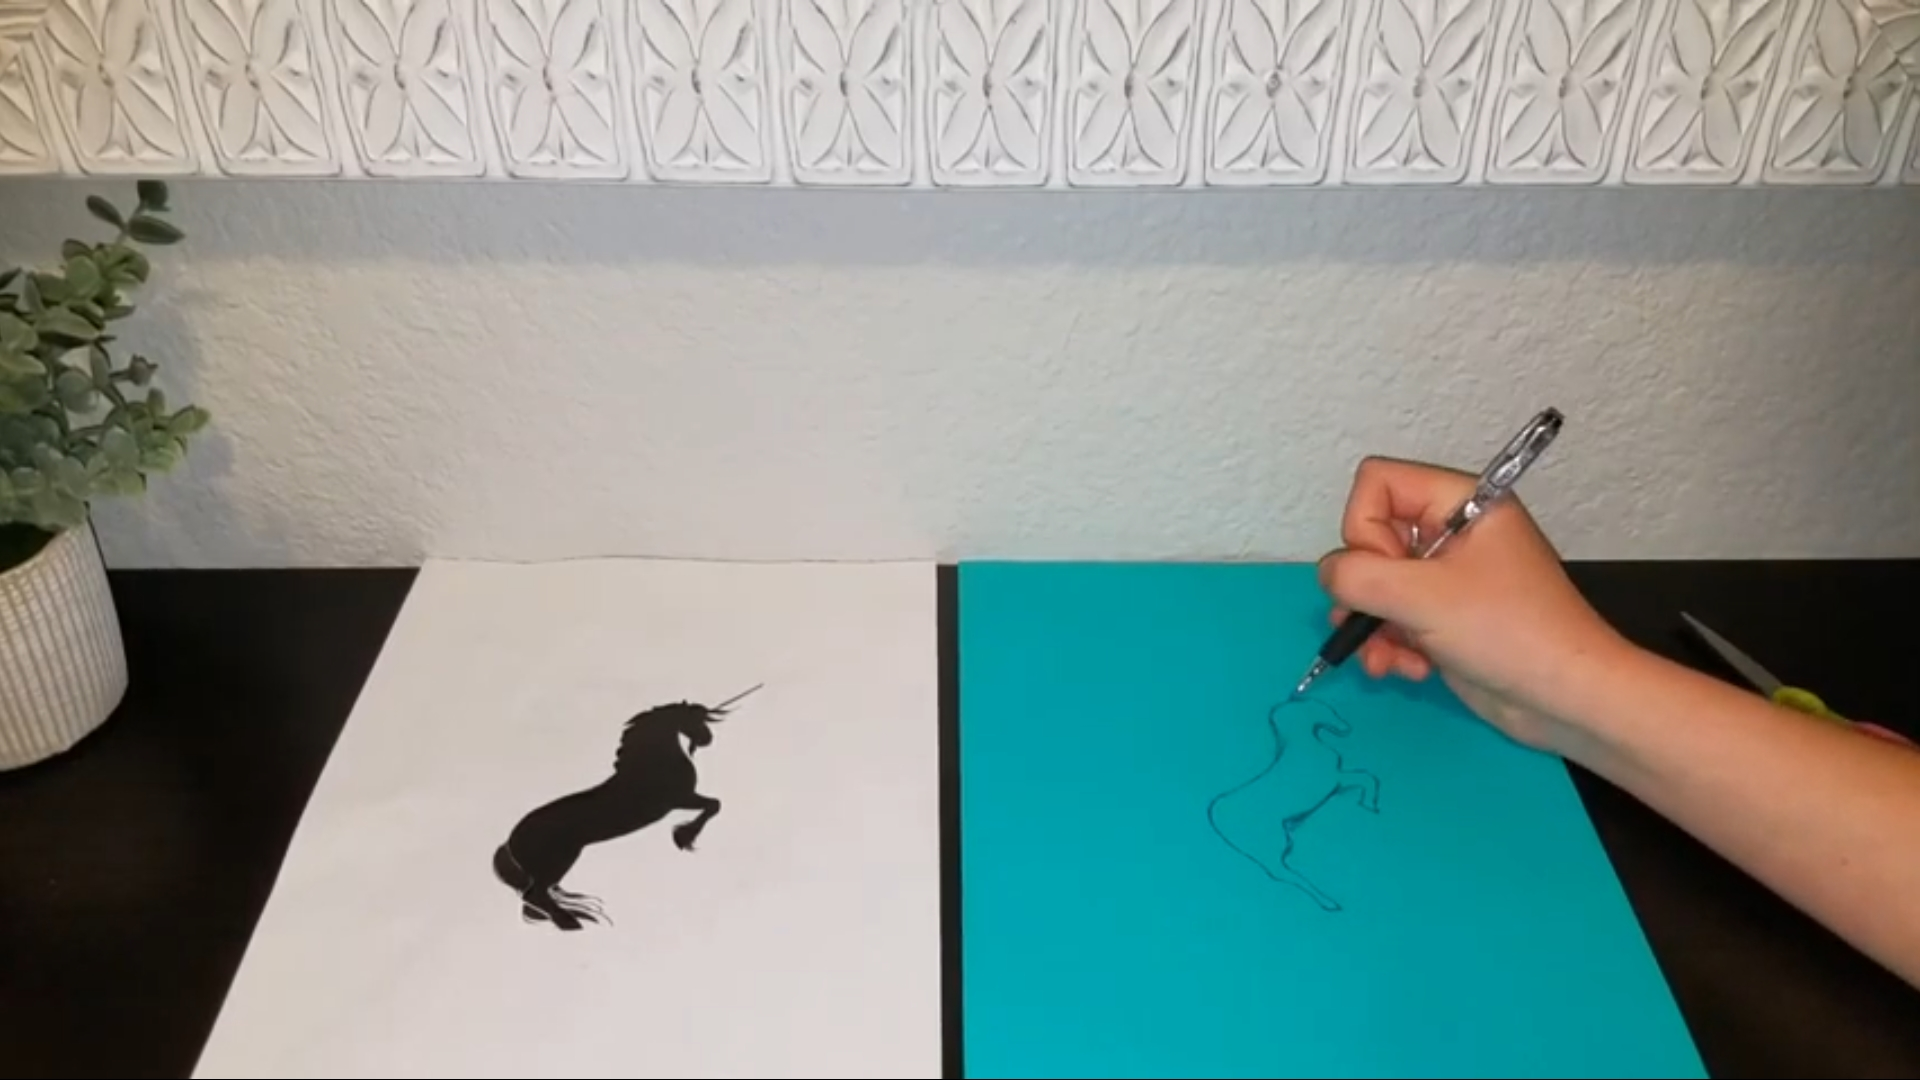 A silhouette of a unicorn on the left with a hand using a pencil to copy the outline freehanded on the right